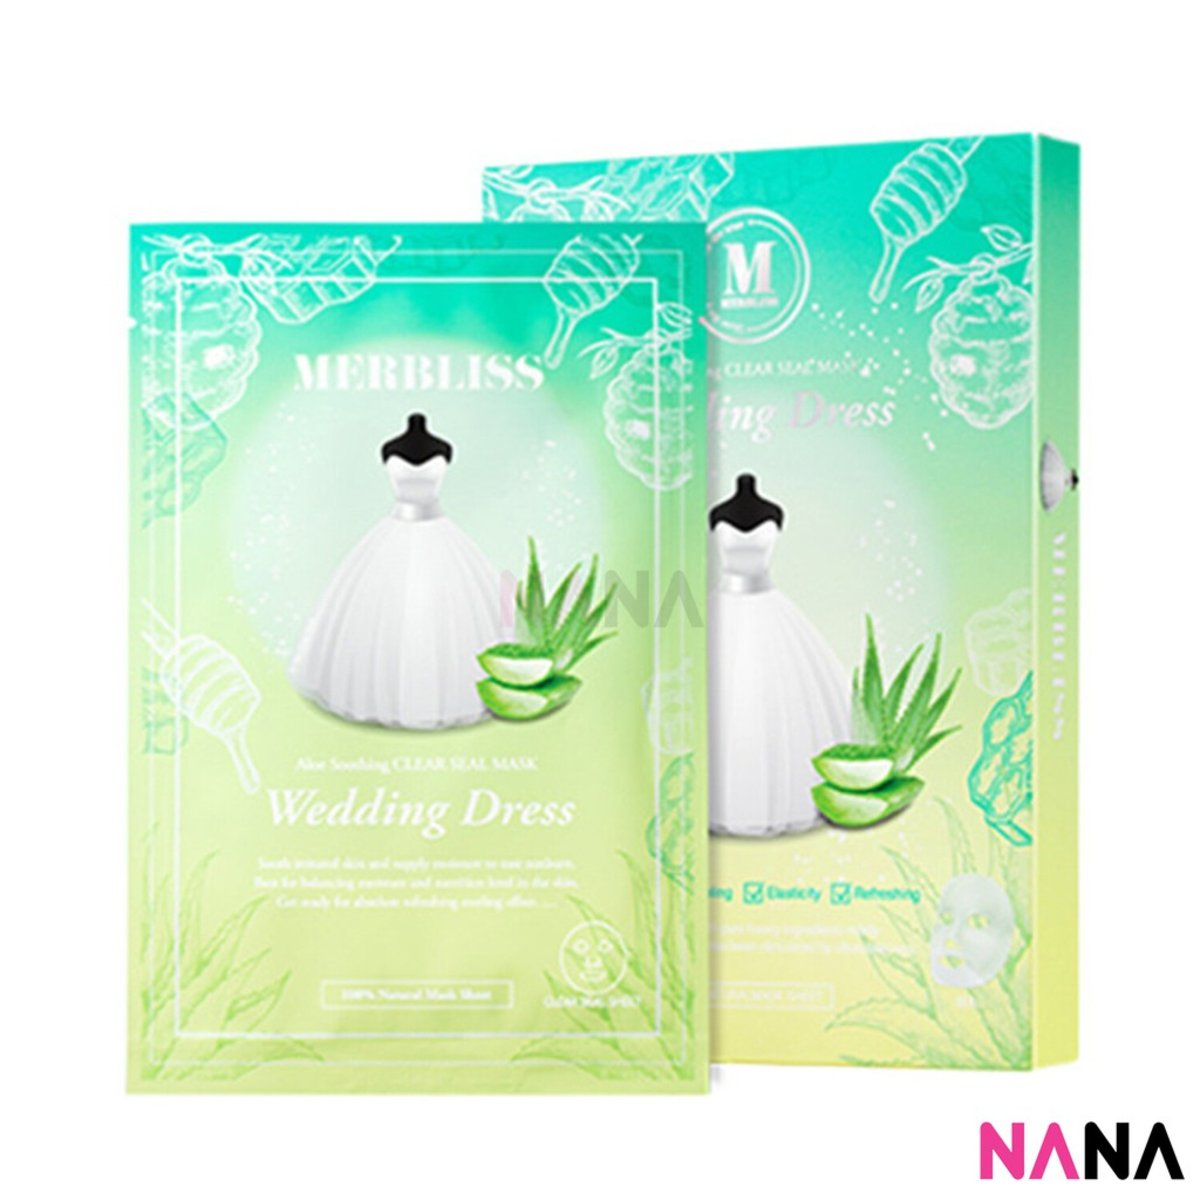 Wedding Dress Aloe Soothing Clear Seal Mask (5 Sheets/ Box)